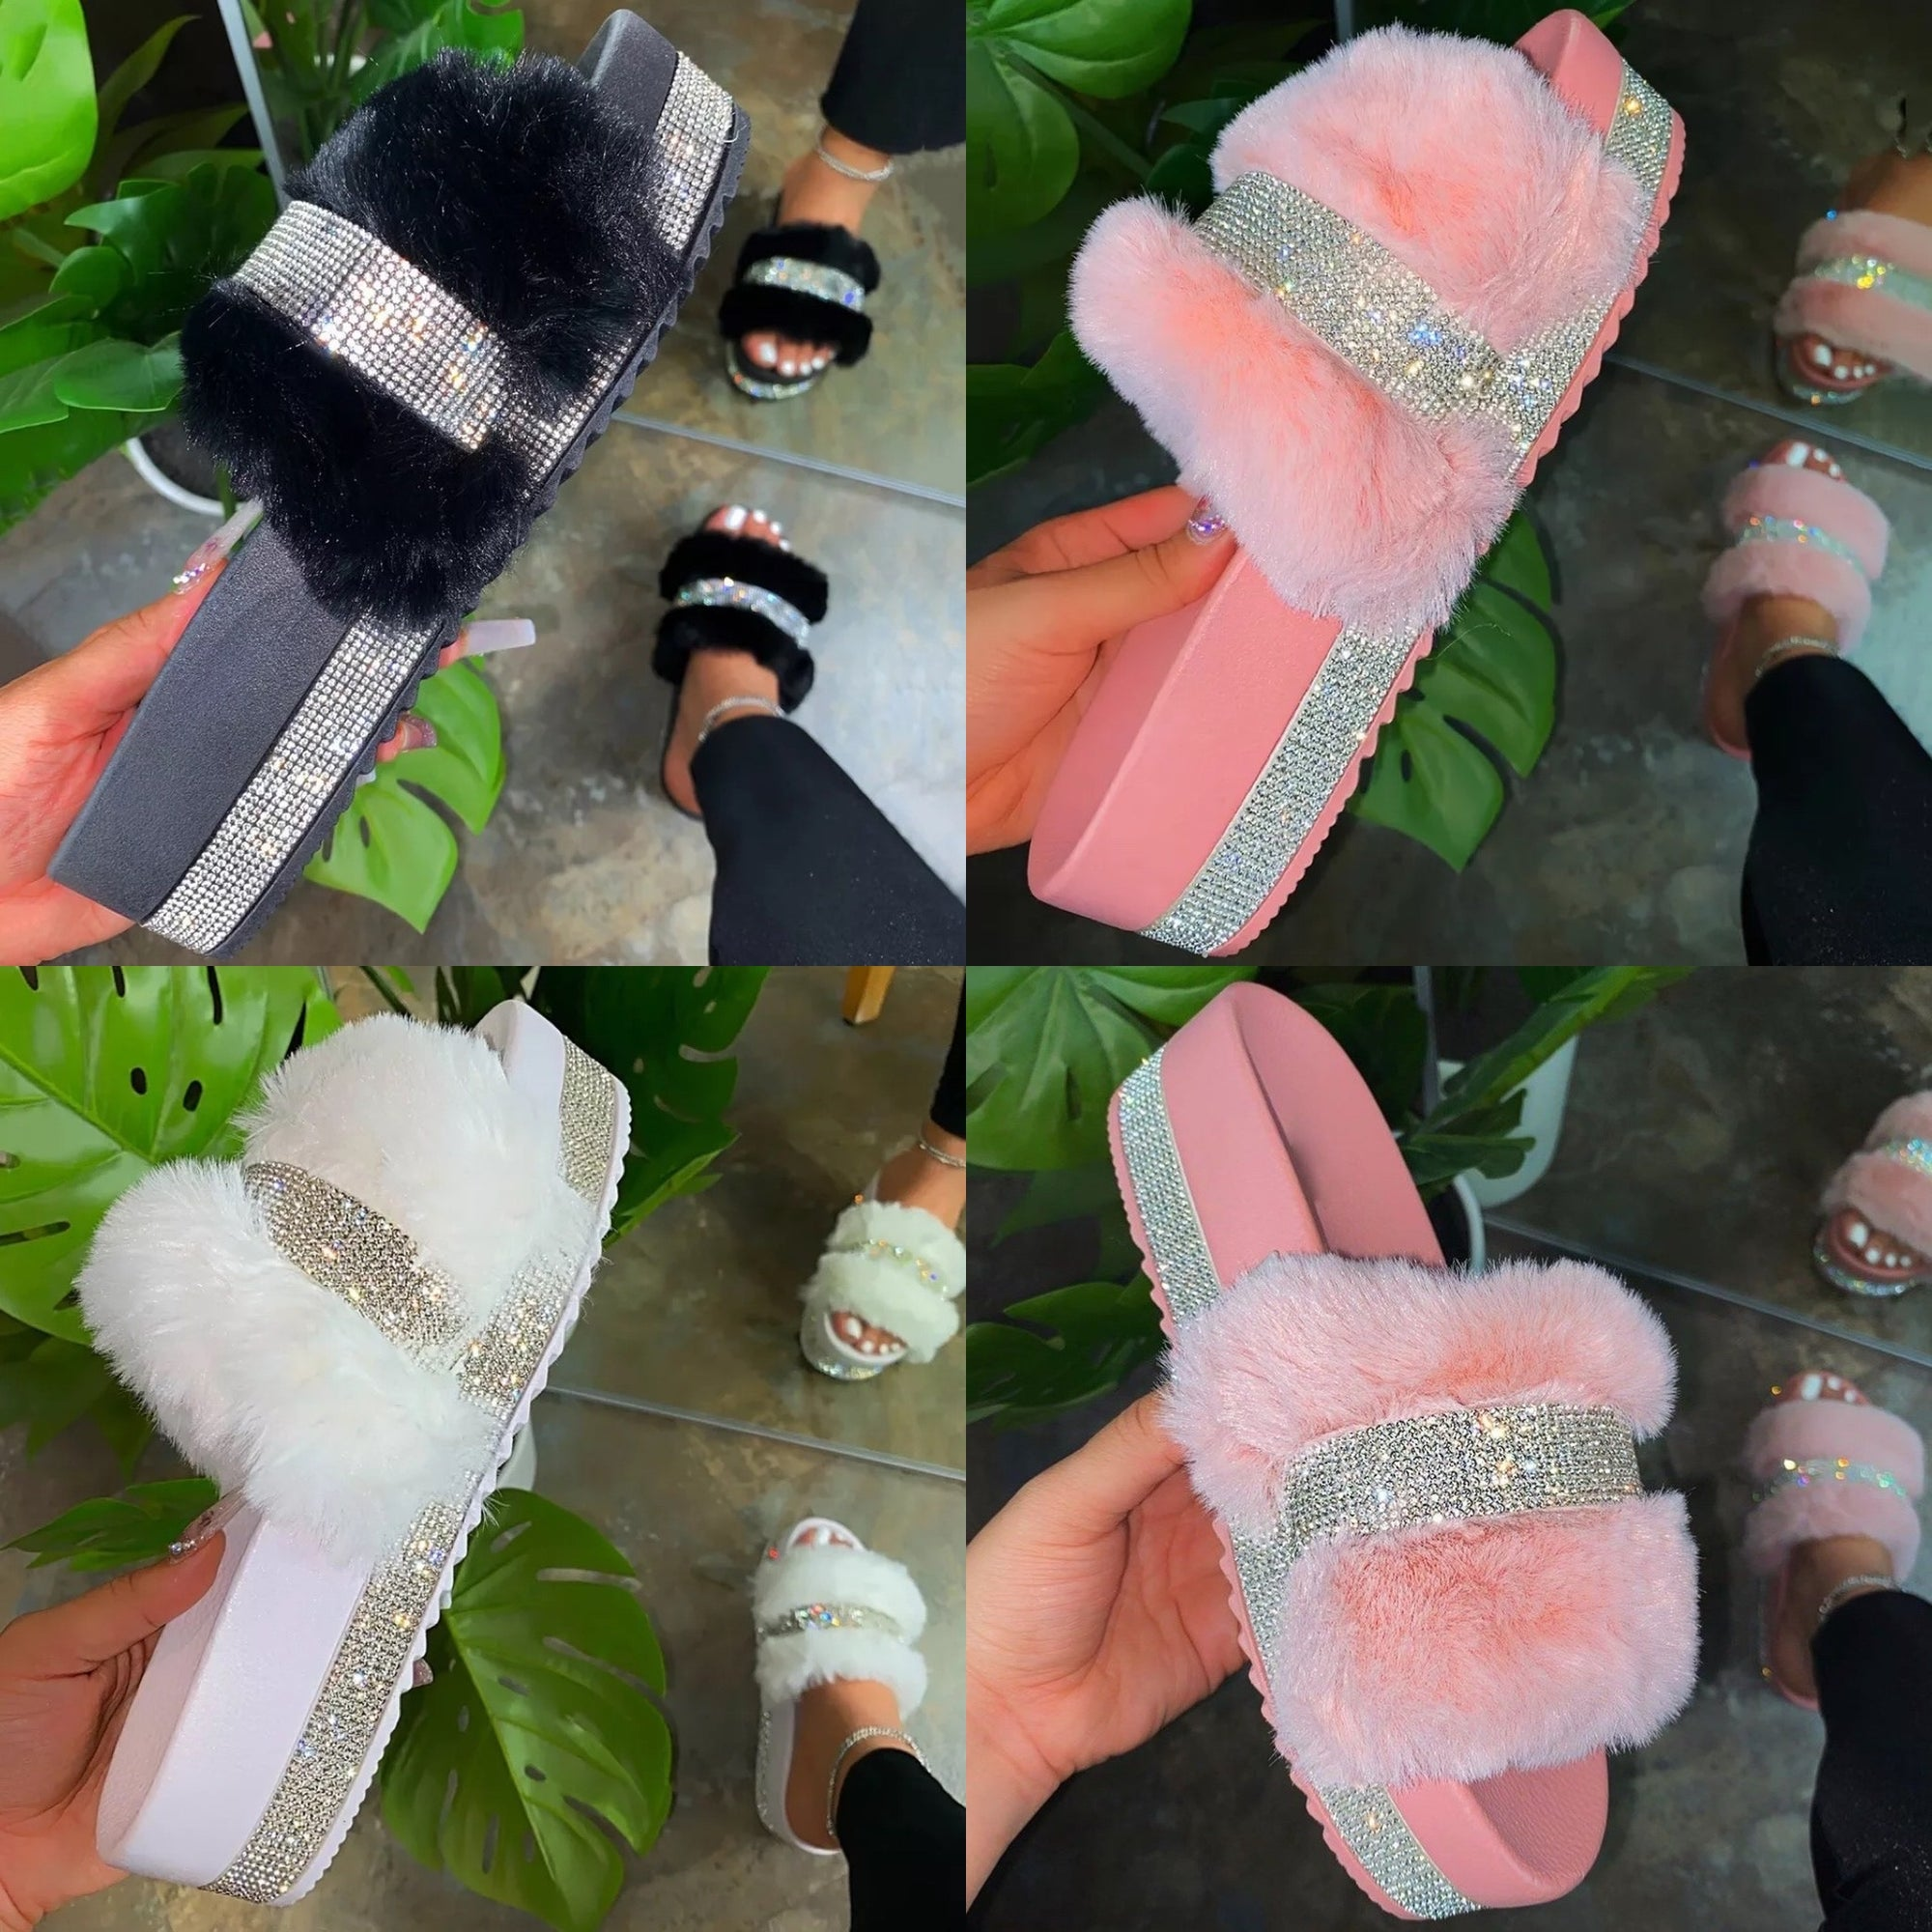 Crystal Fur Platform Sandals Crystal Fur Platform Sandals - Soo Fluffy Soo Fluffy Pink / UK 4 / US 6 / EU 37